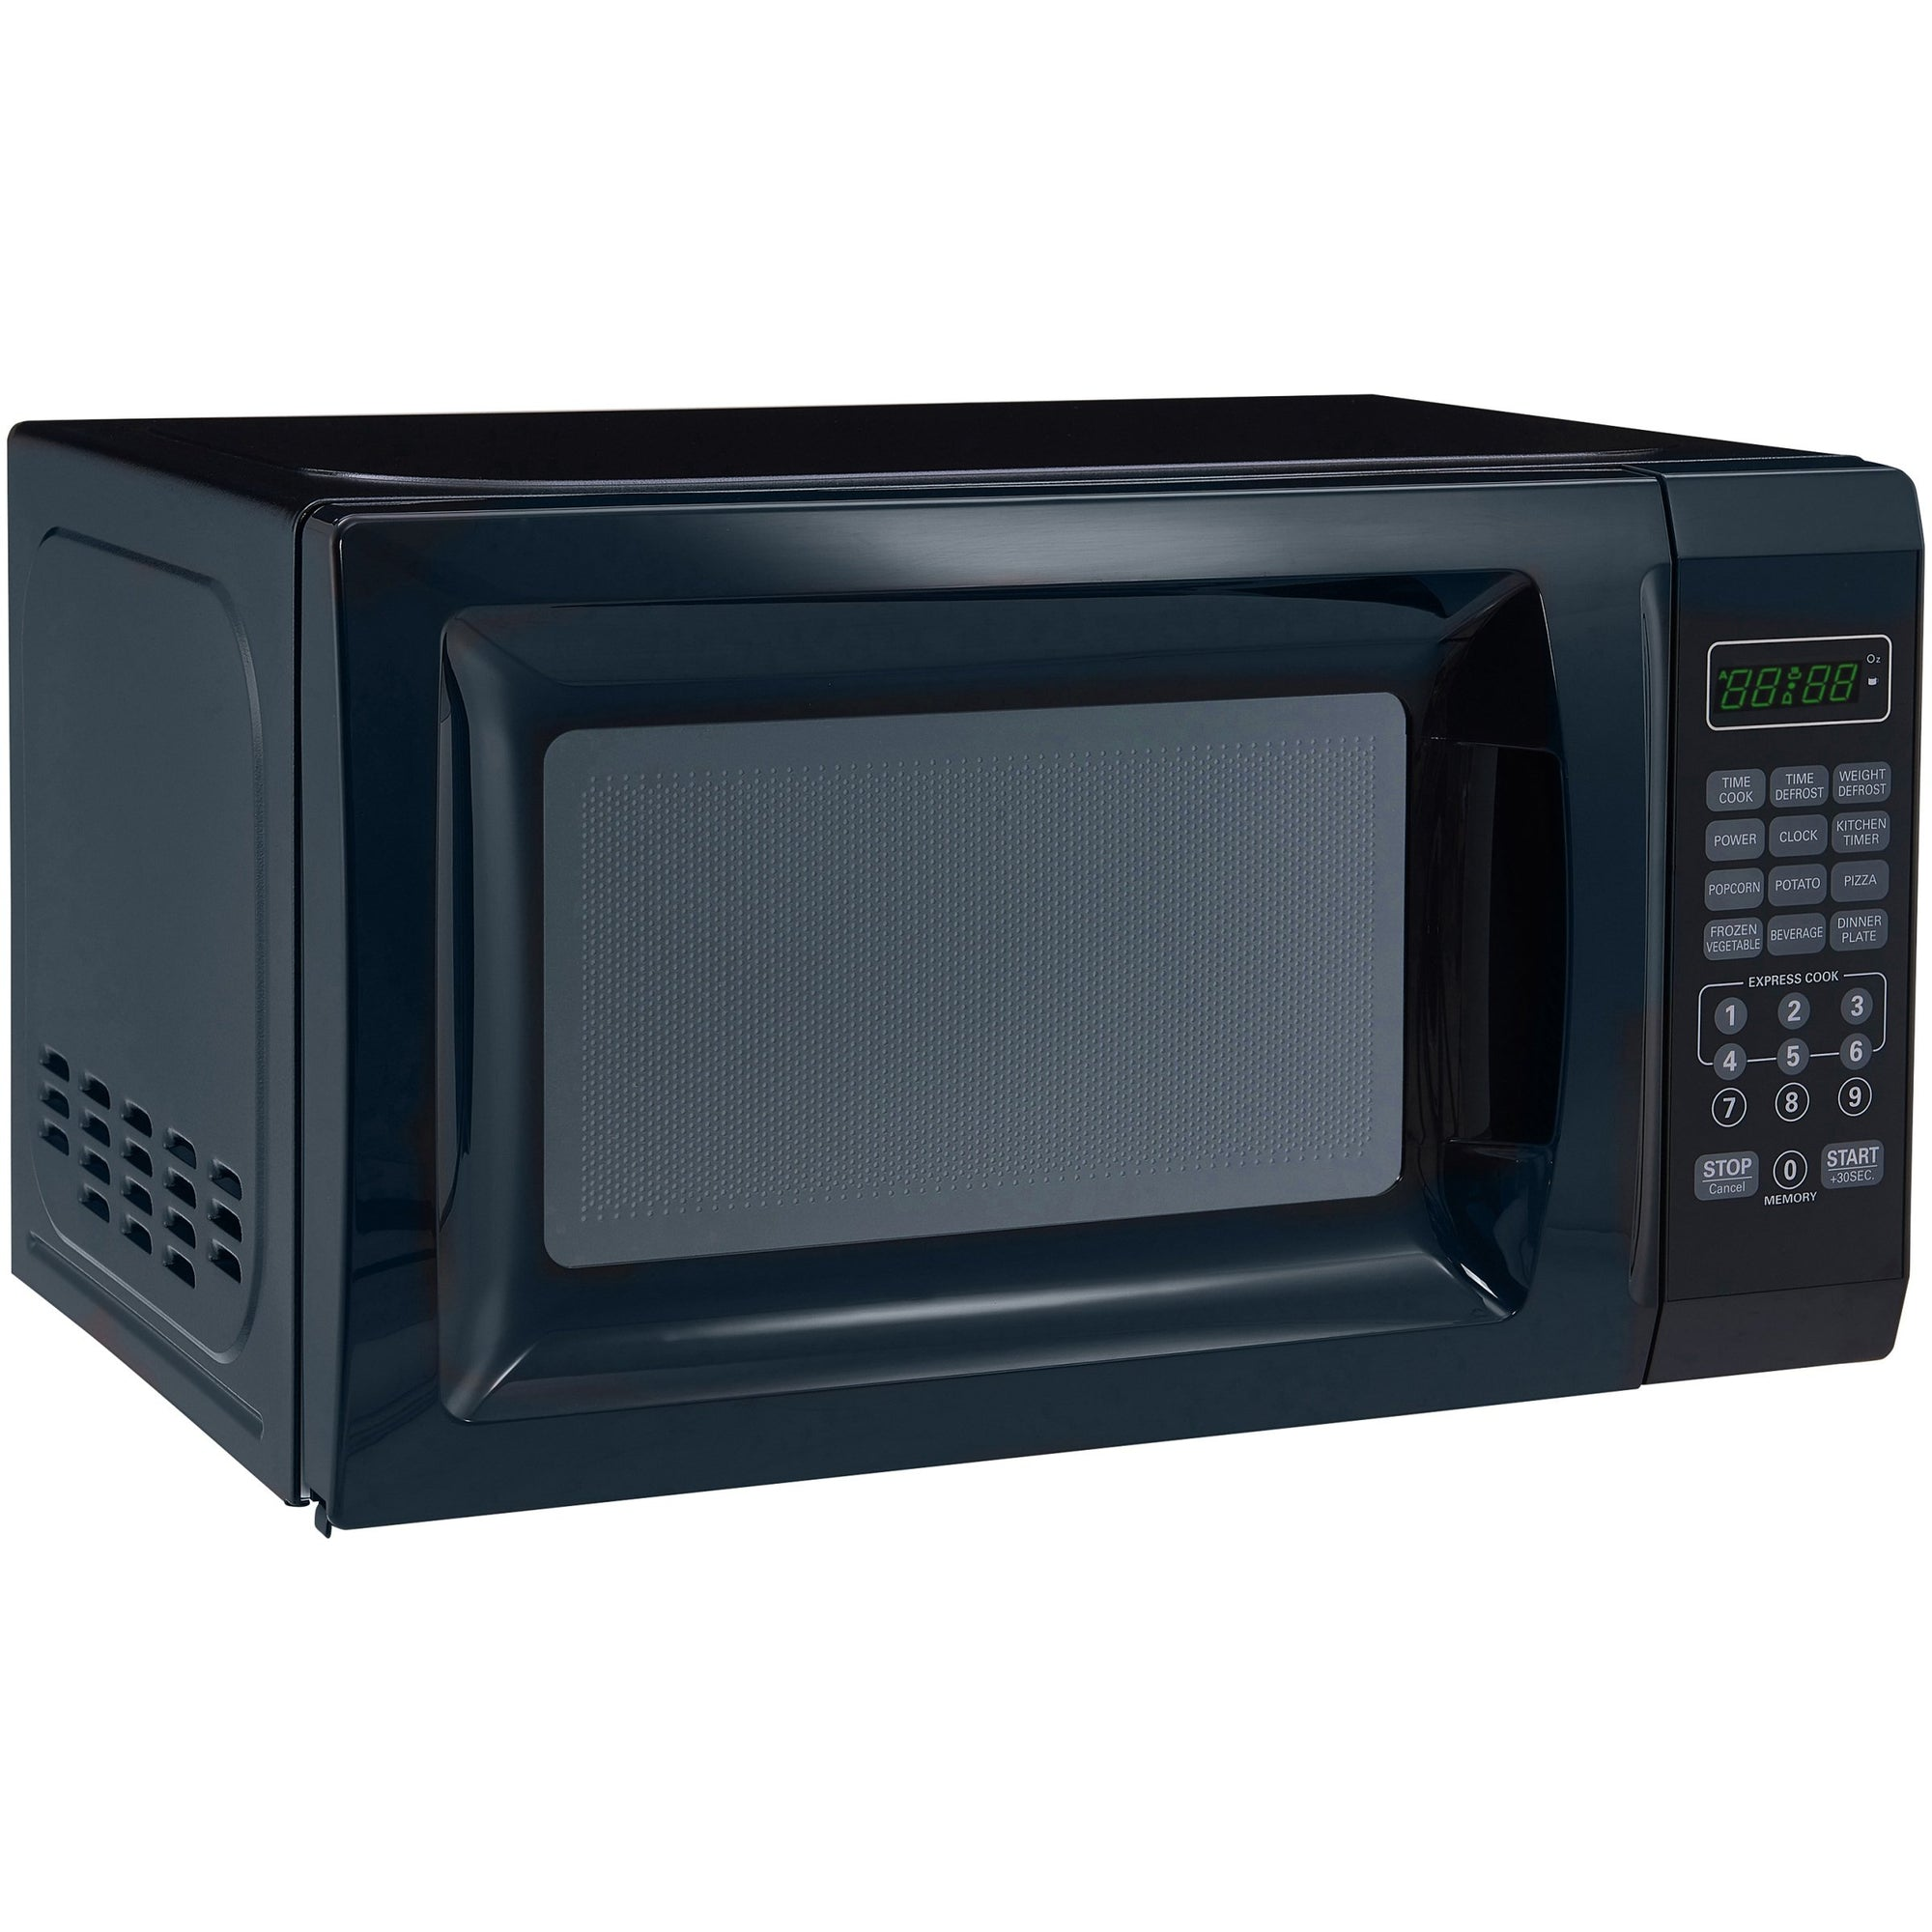 Free Cleaning Wipes Black Mainstays 700W Output Microwave Oven ...